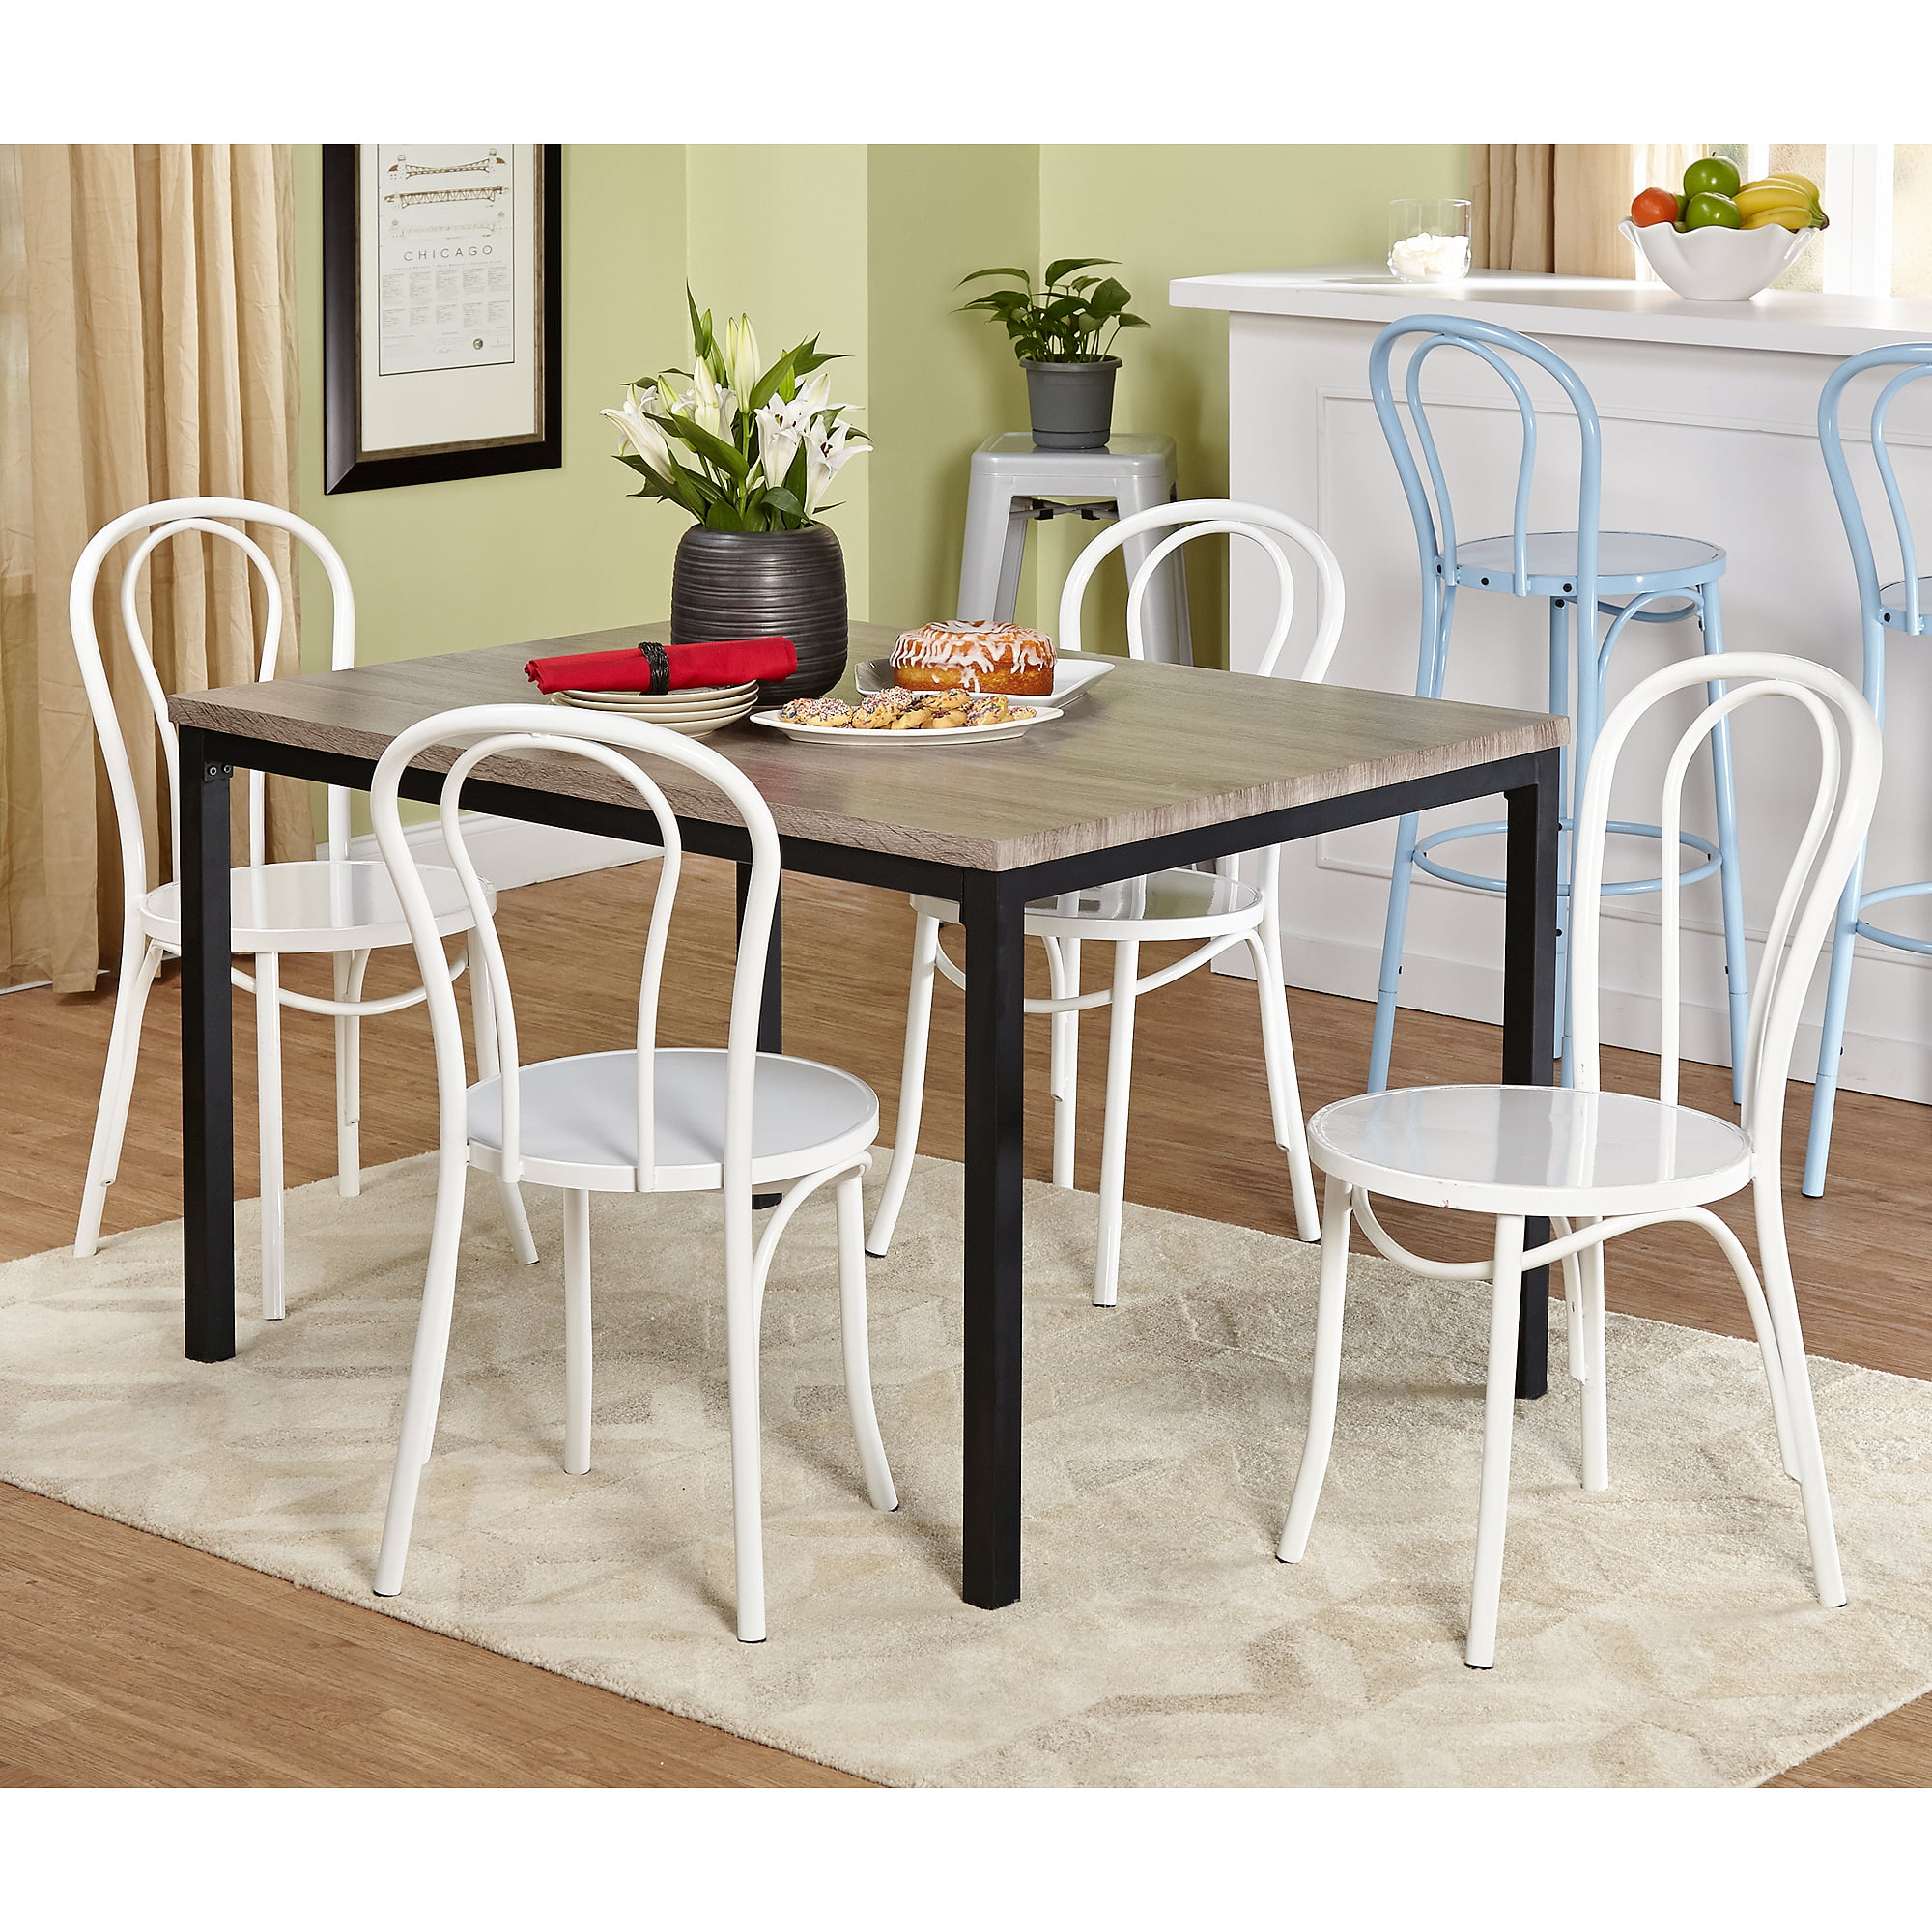 Jaxx Collection Dining Table, Black/Gray - Walmart.com